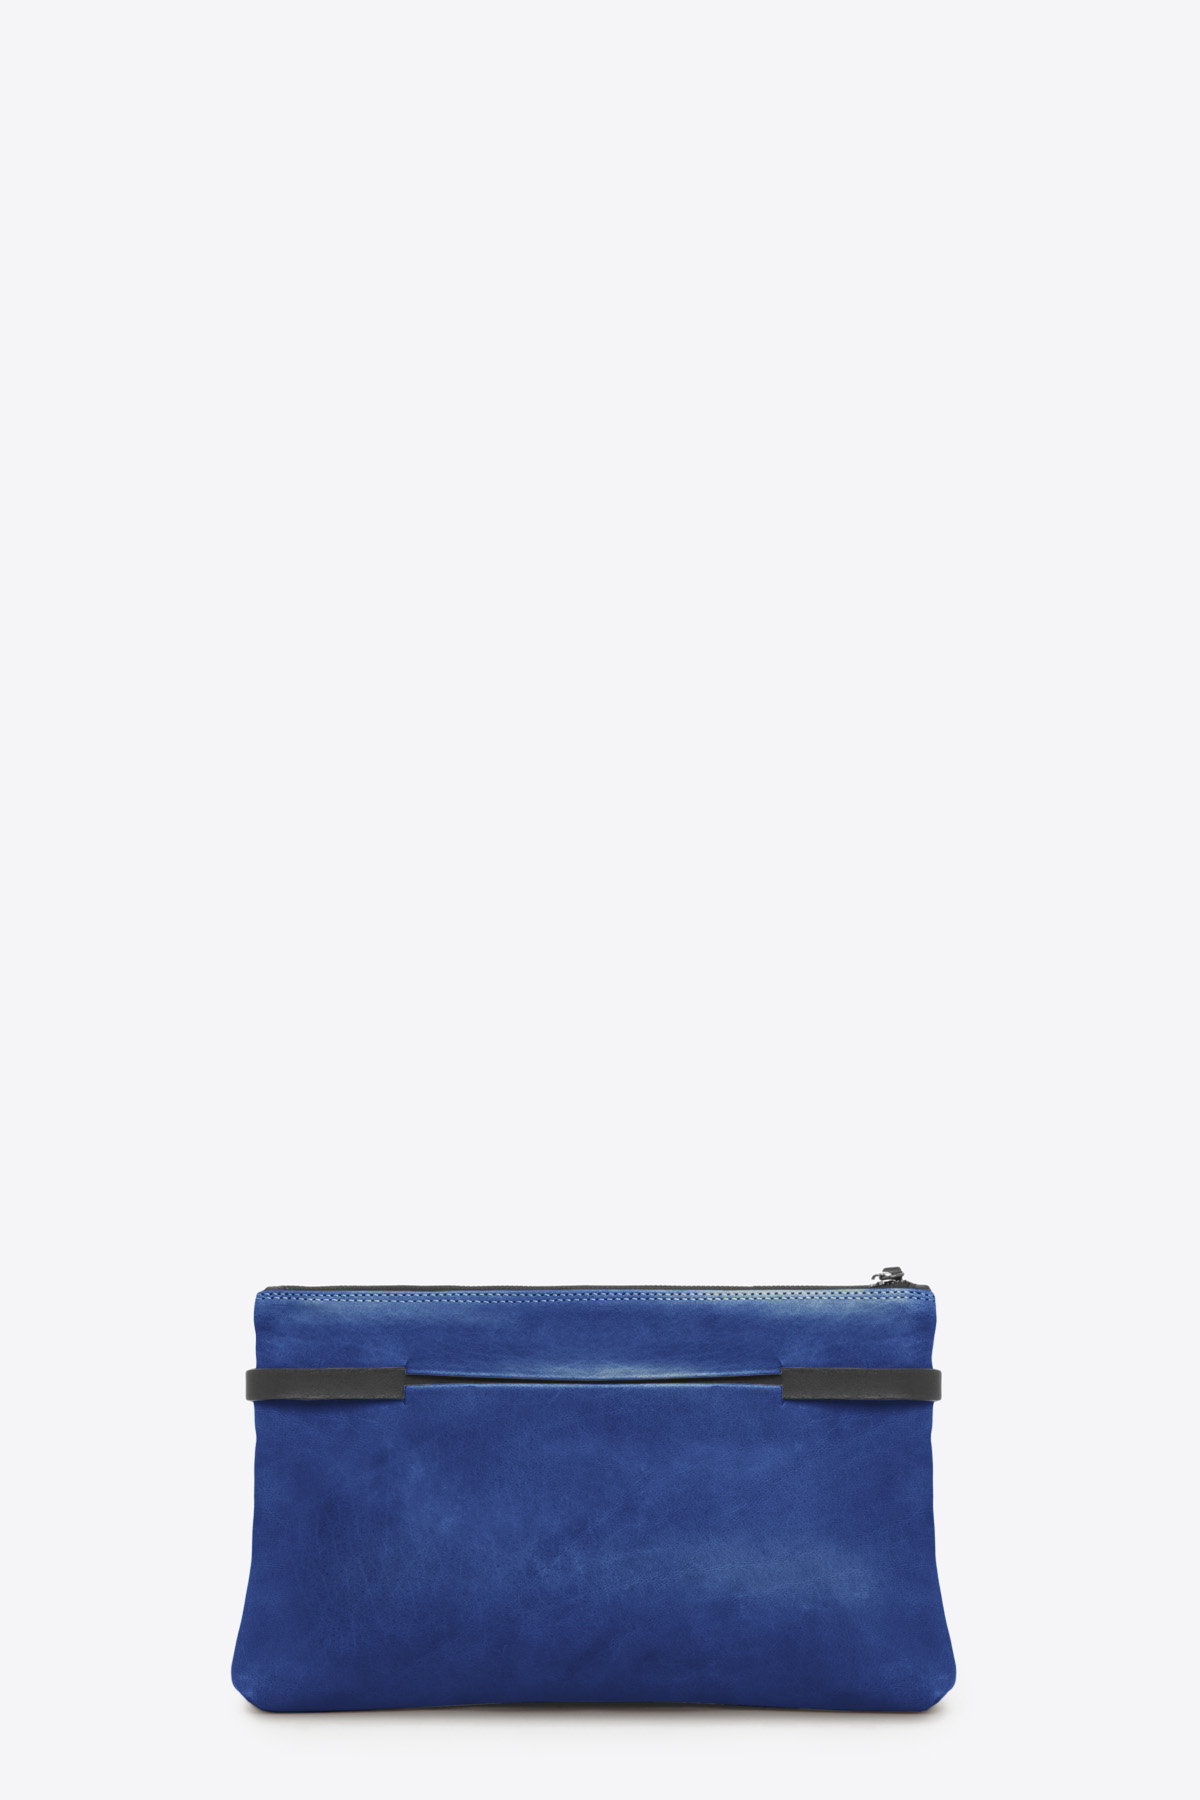 dclr004l-tapeclutch-a20-royalblue-back